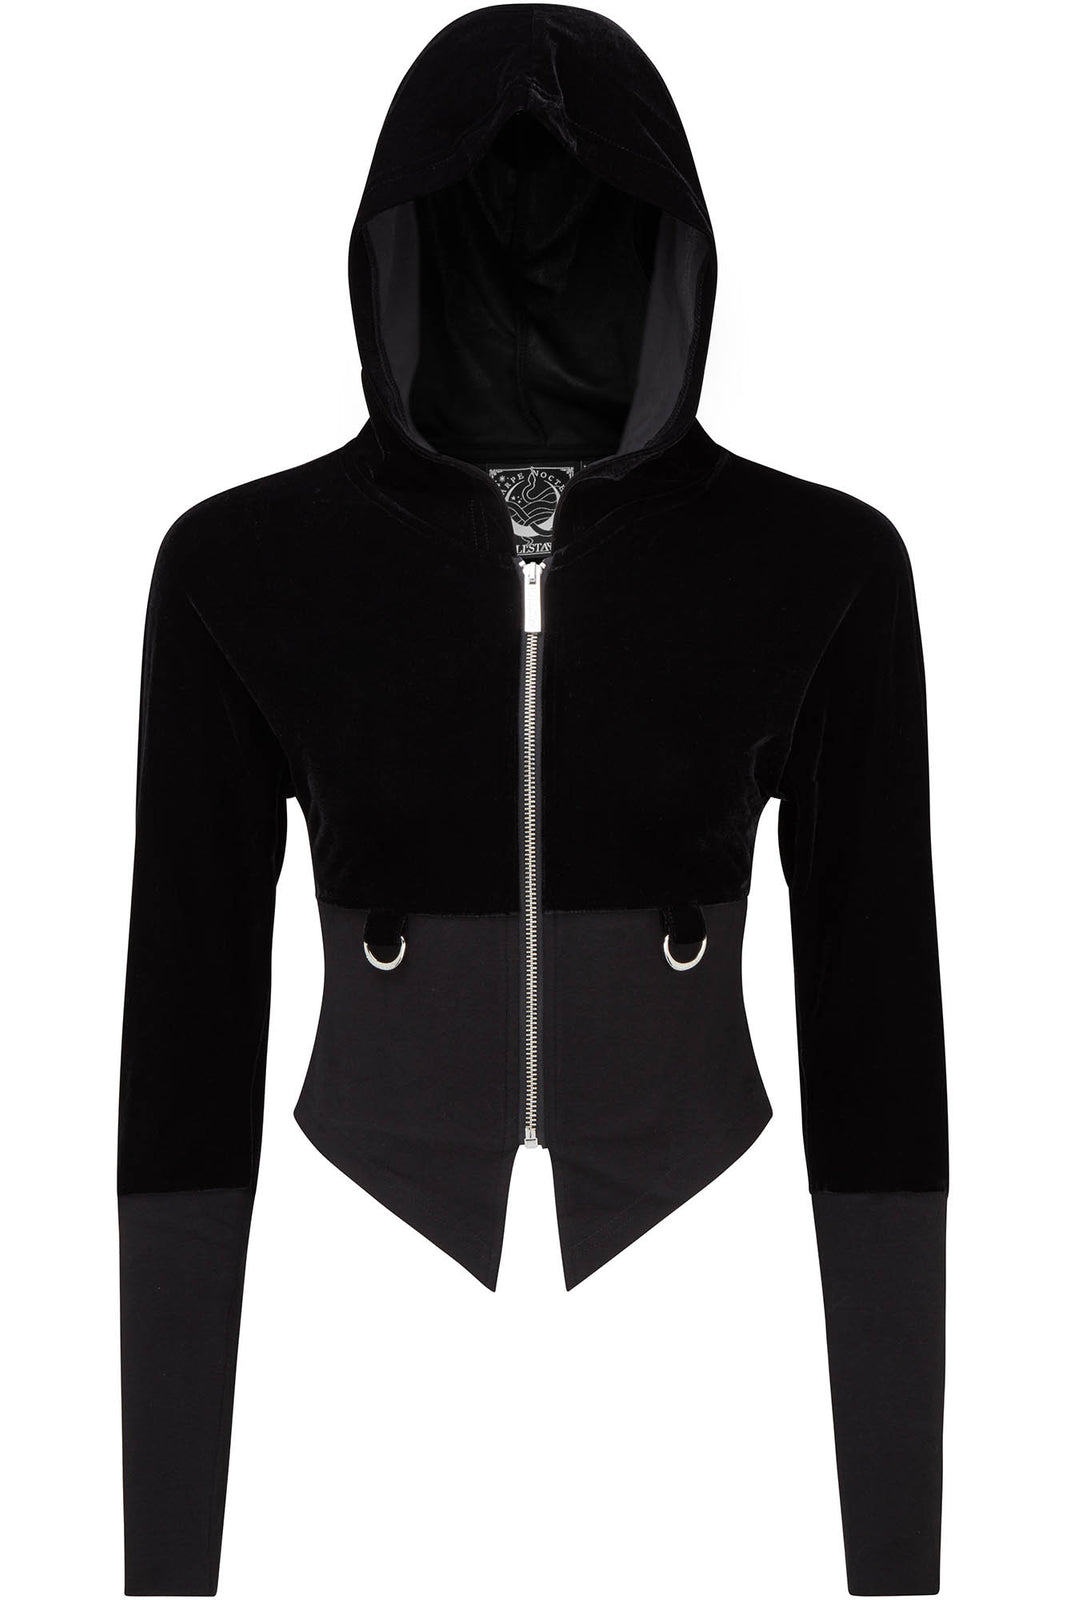 Shadow Shift Hooded Top